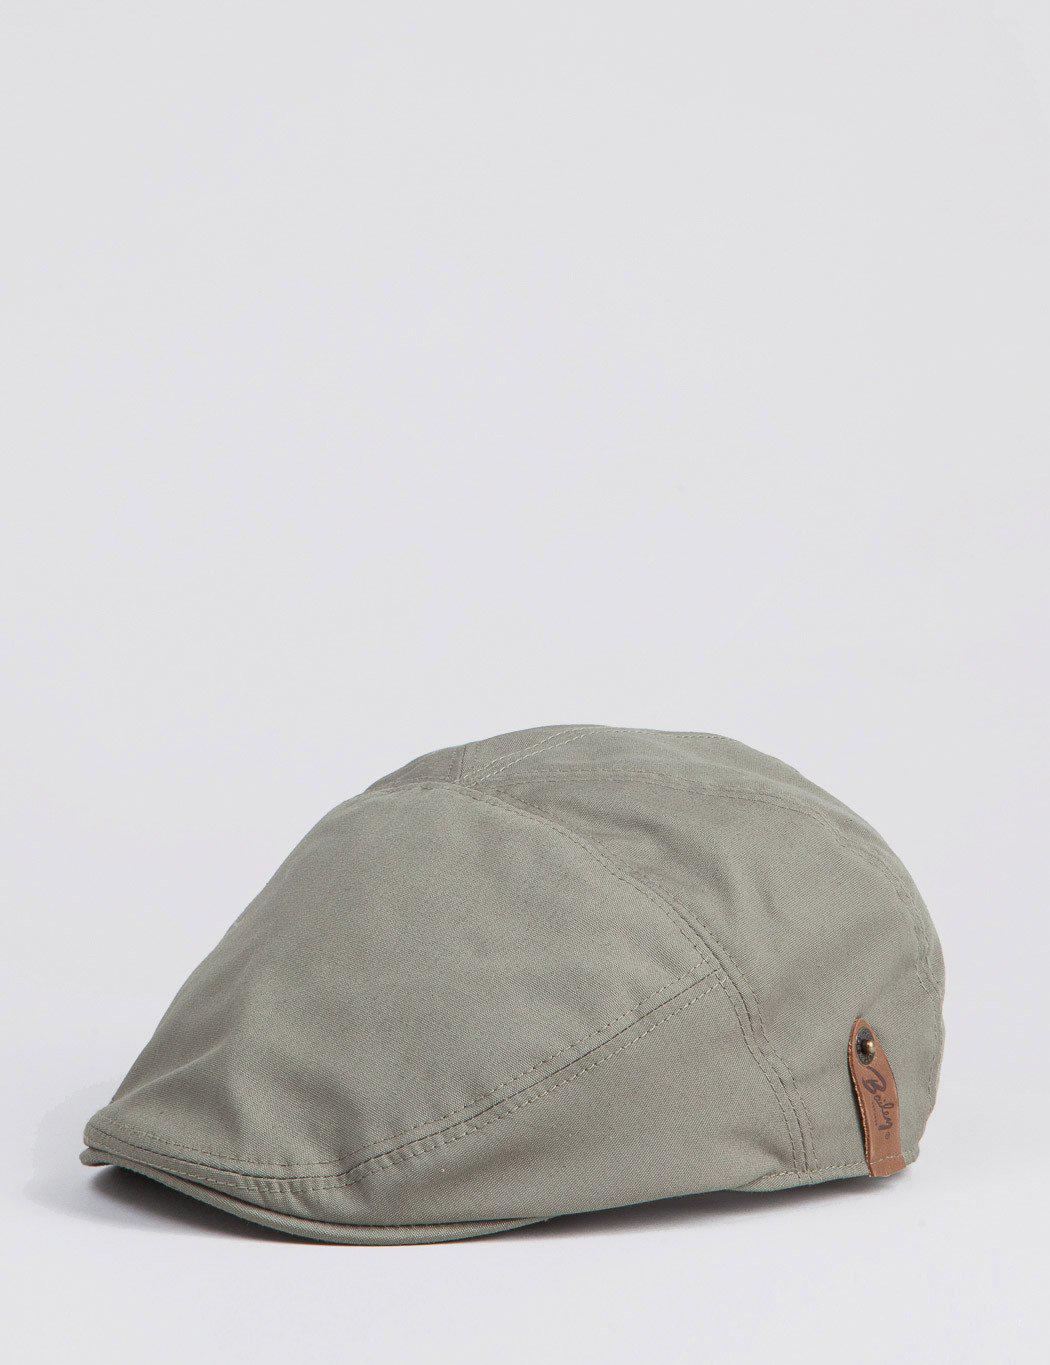 4a1424701f9 Lyst - Bailey of Hollywood Bailey Graham Waterproof Ivy Flat Cap in ...